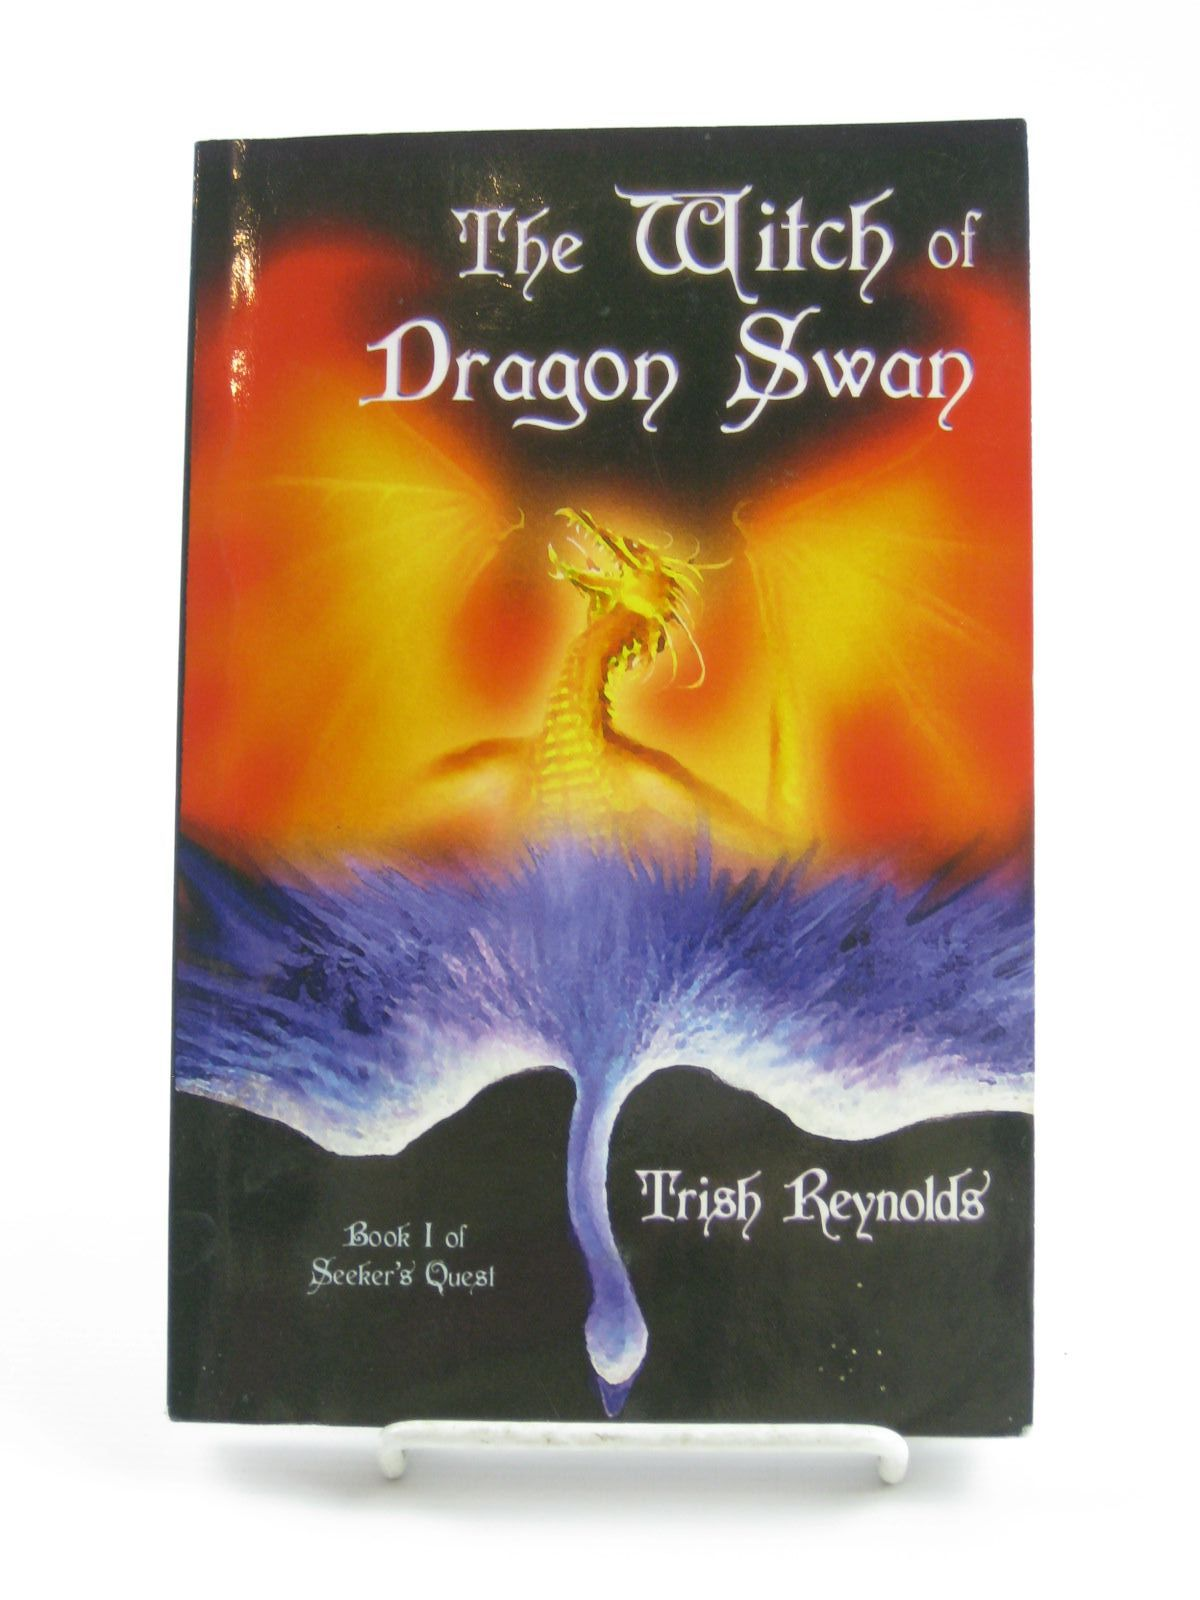 Photo of THE WITCH OF DRAGON SWAN written by Reynolds, Trish illustrated by Eastwood, John Wayne published by Pagan World Press (STOCK CODE: 1310681)  for sale by Stella & Rose's Books